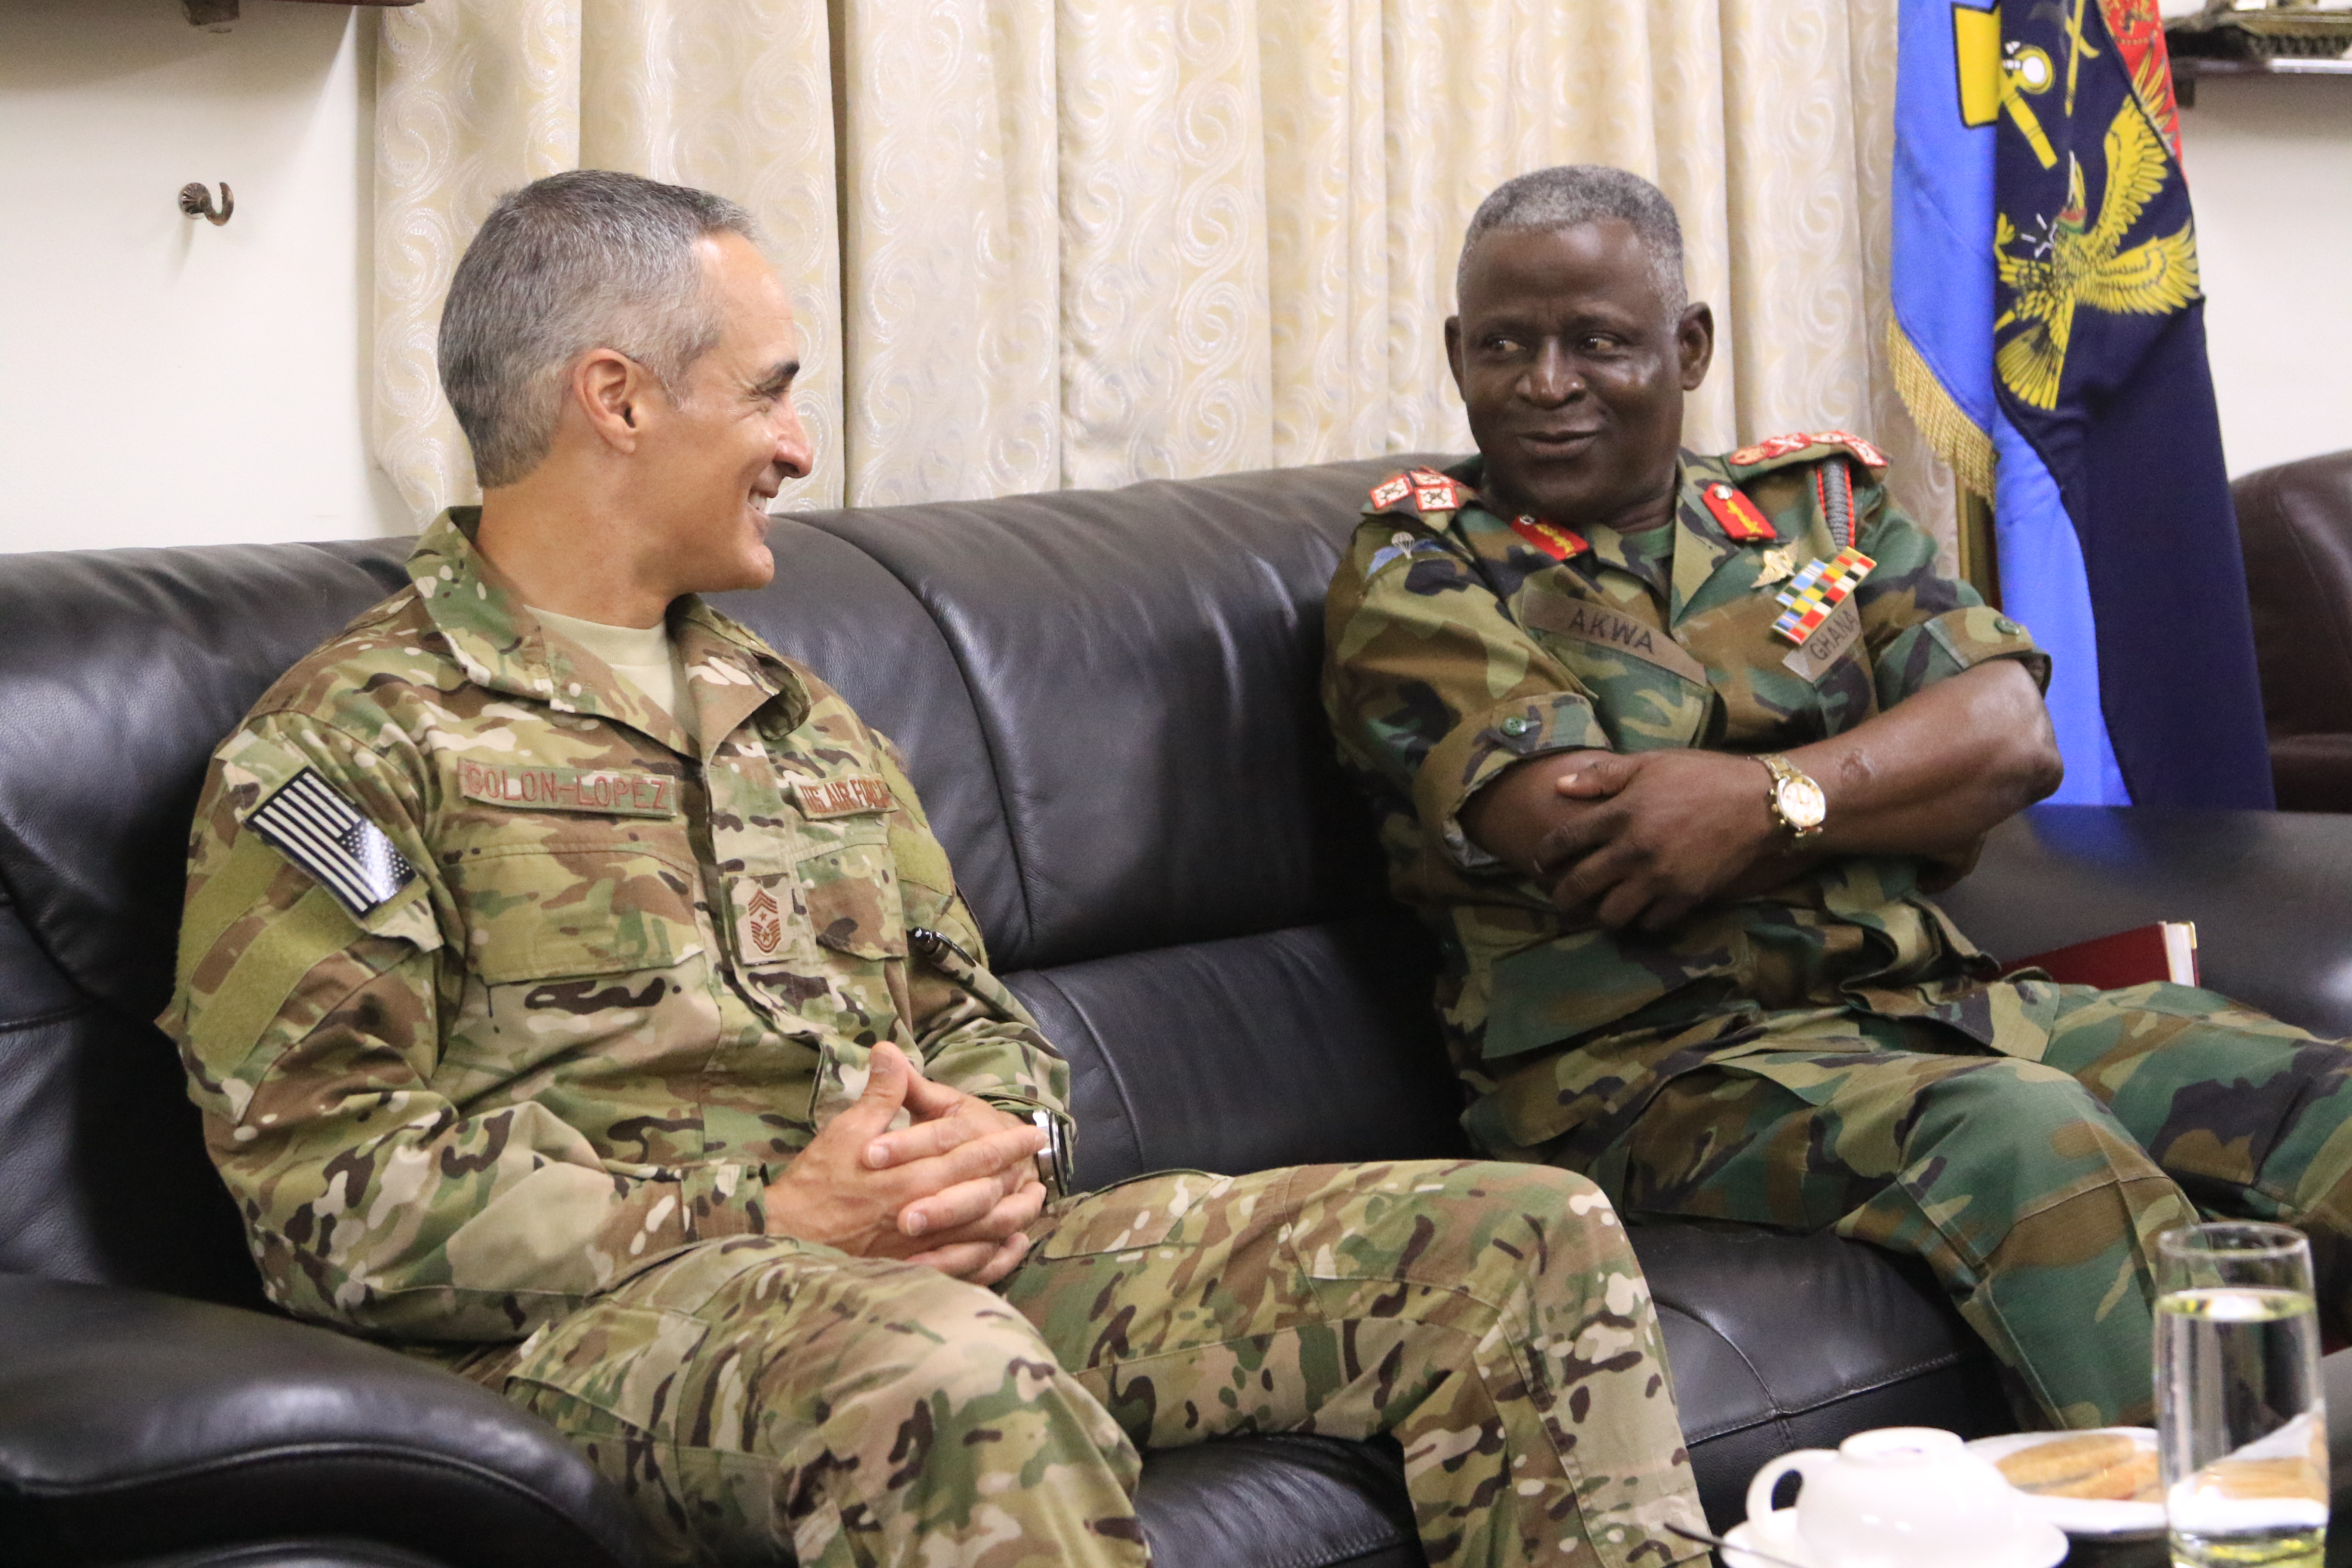 U.S. Air Force Chief Master Sgt. Ramon Colon-Lopez meets with Lt. Gen. Obed Akwa, Ghanaian Chief of Defence Staff, August 7, 2018.  Colon-Lopez's visit included dialogue with Ghana Armed Forces's non-commissioned officers to shape Africa Command's plans to provide senior enlisted professional military education with partnering nations.